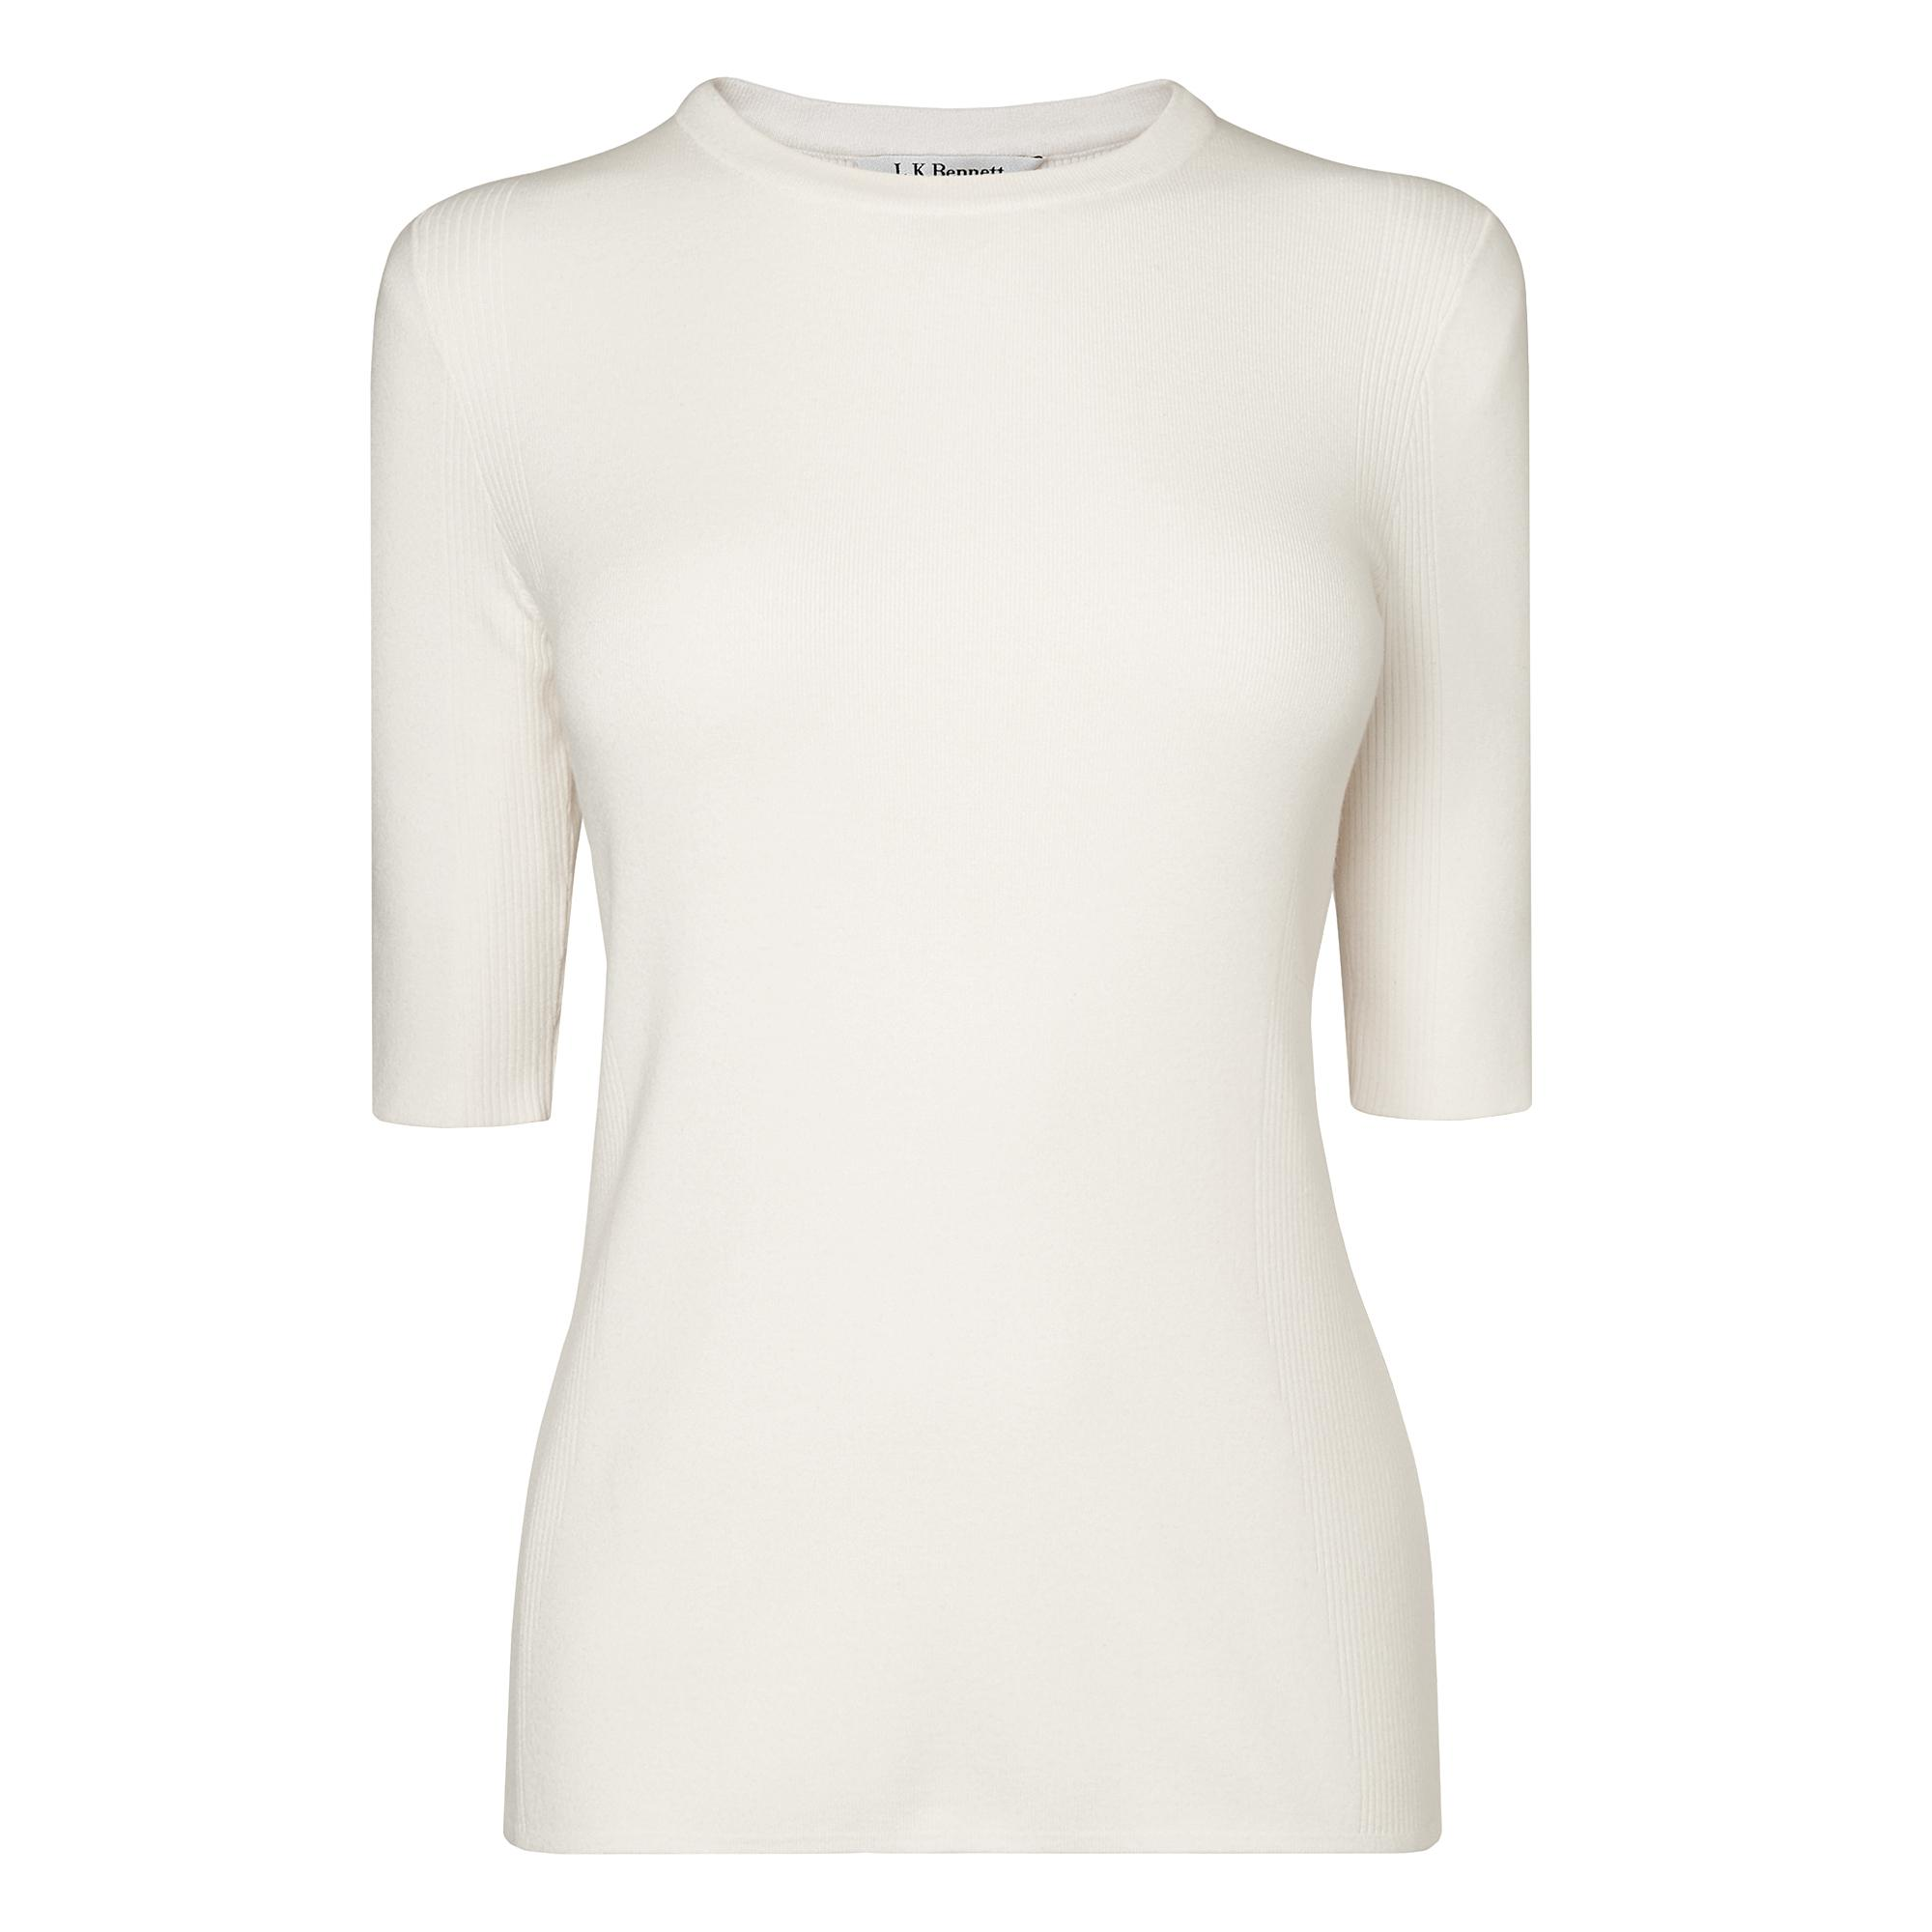 Tomasi Cream Knit Top